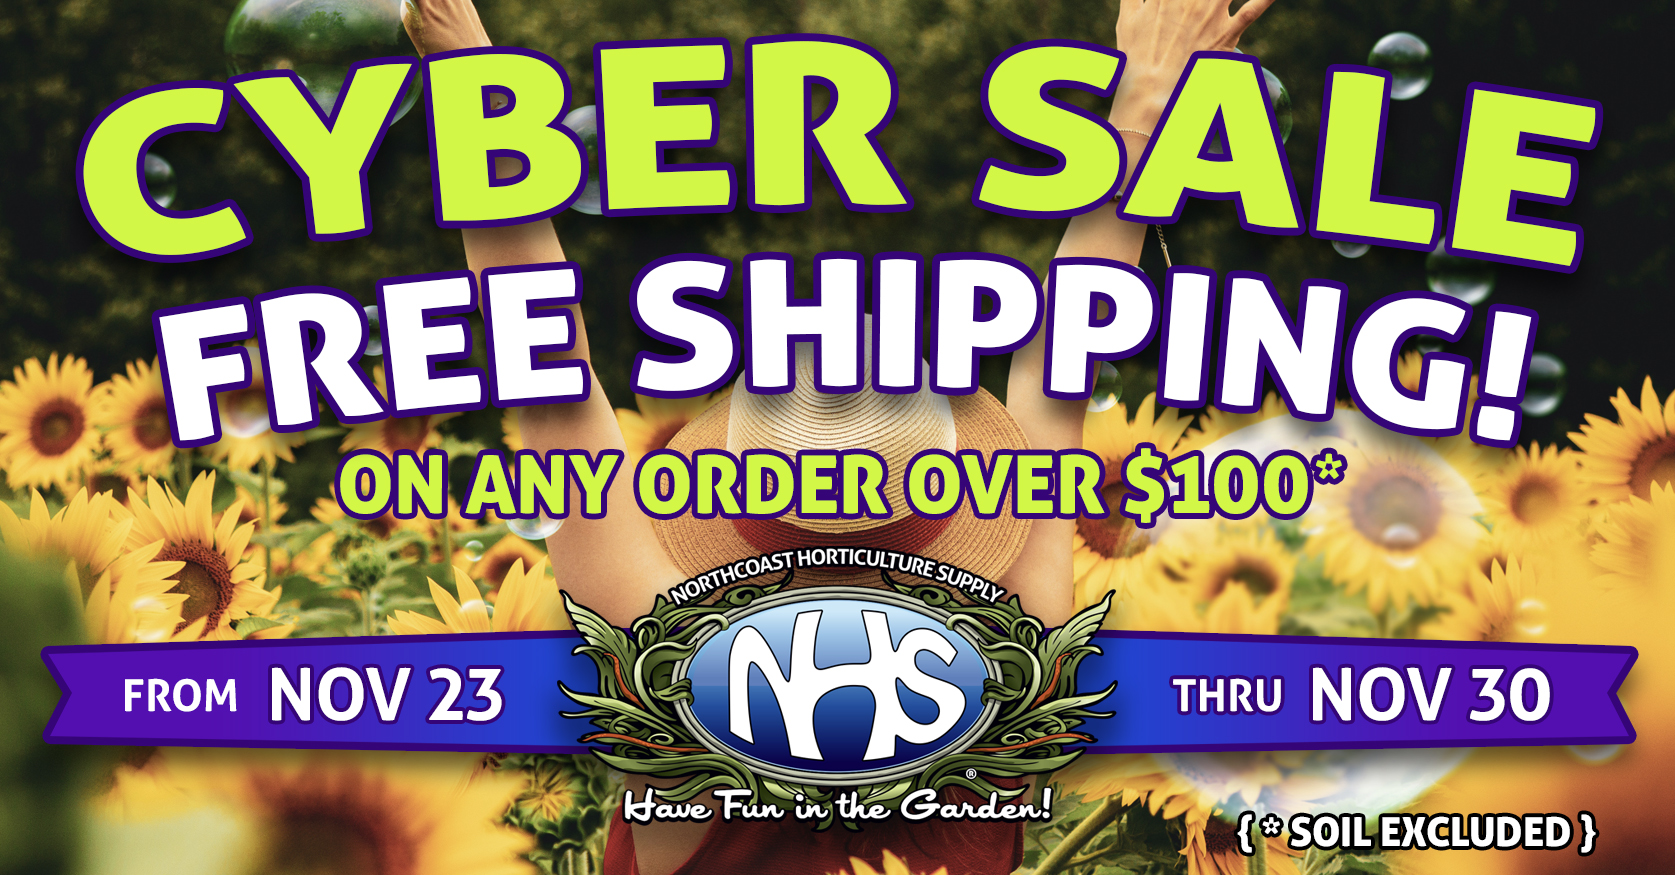 Cyber Sale - Free Shipping November 23-30